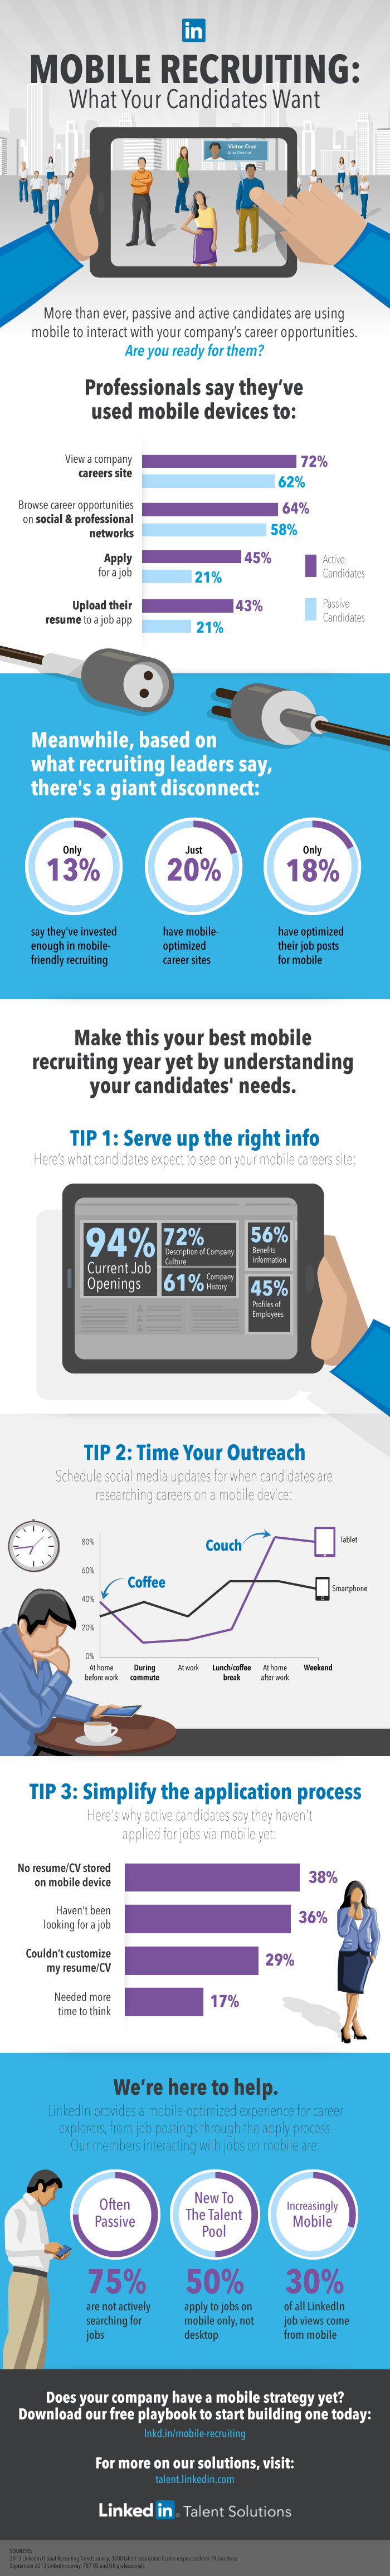 Mobile Recruiting Statistics Infographic